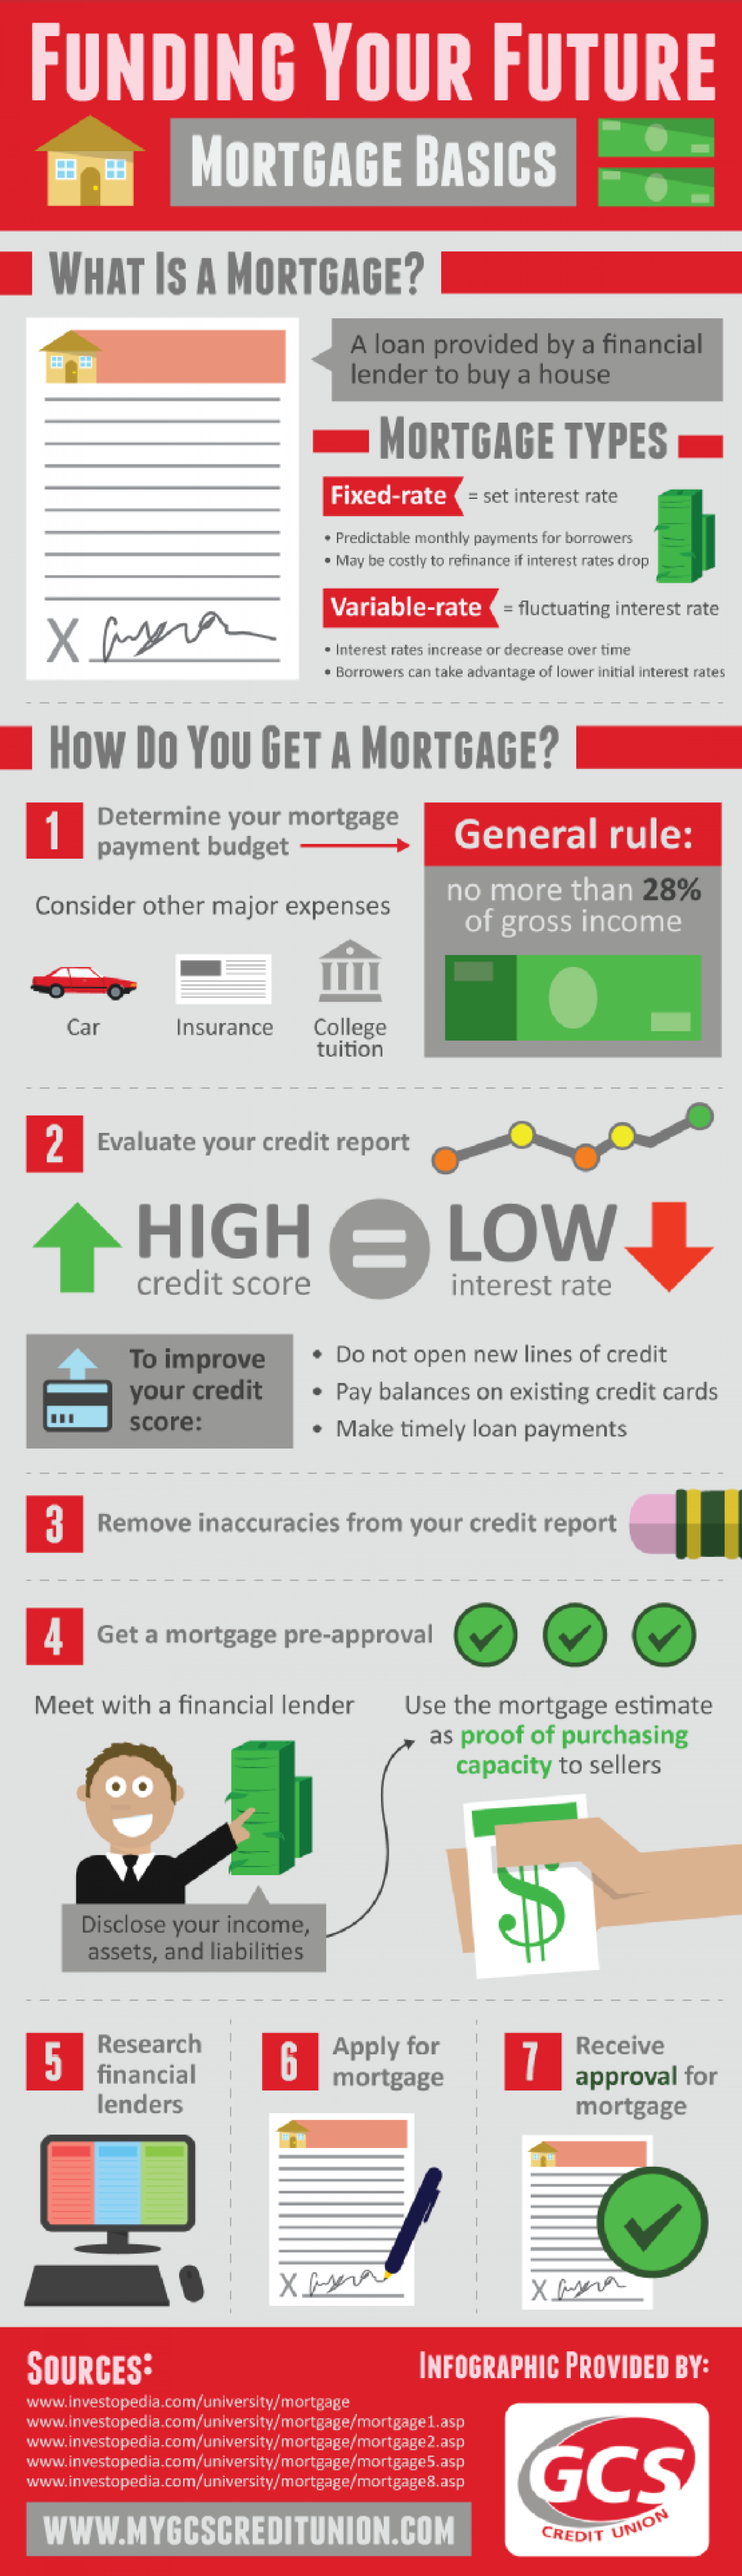 Funding Your Future: Mortgage Basics Infographic